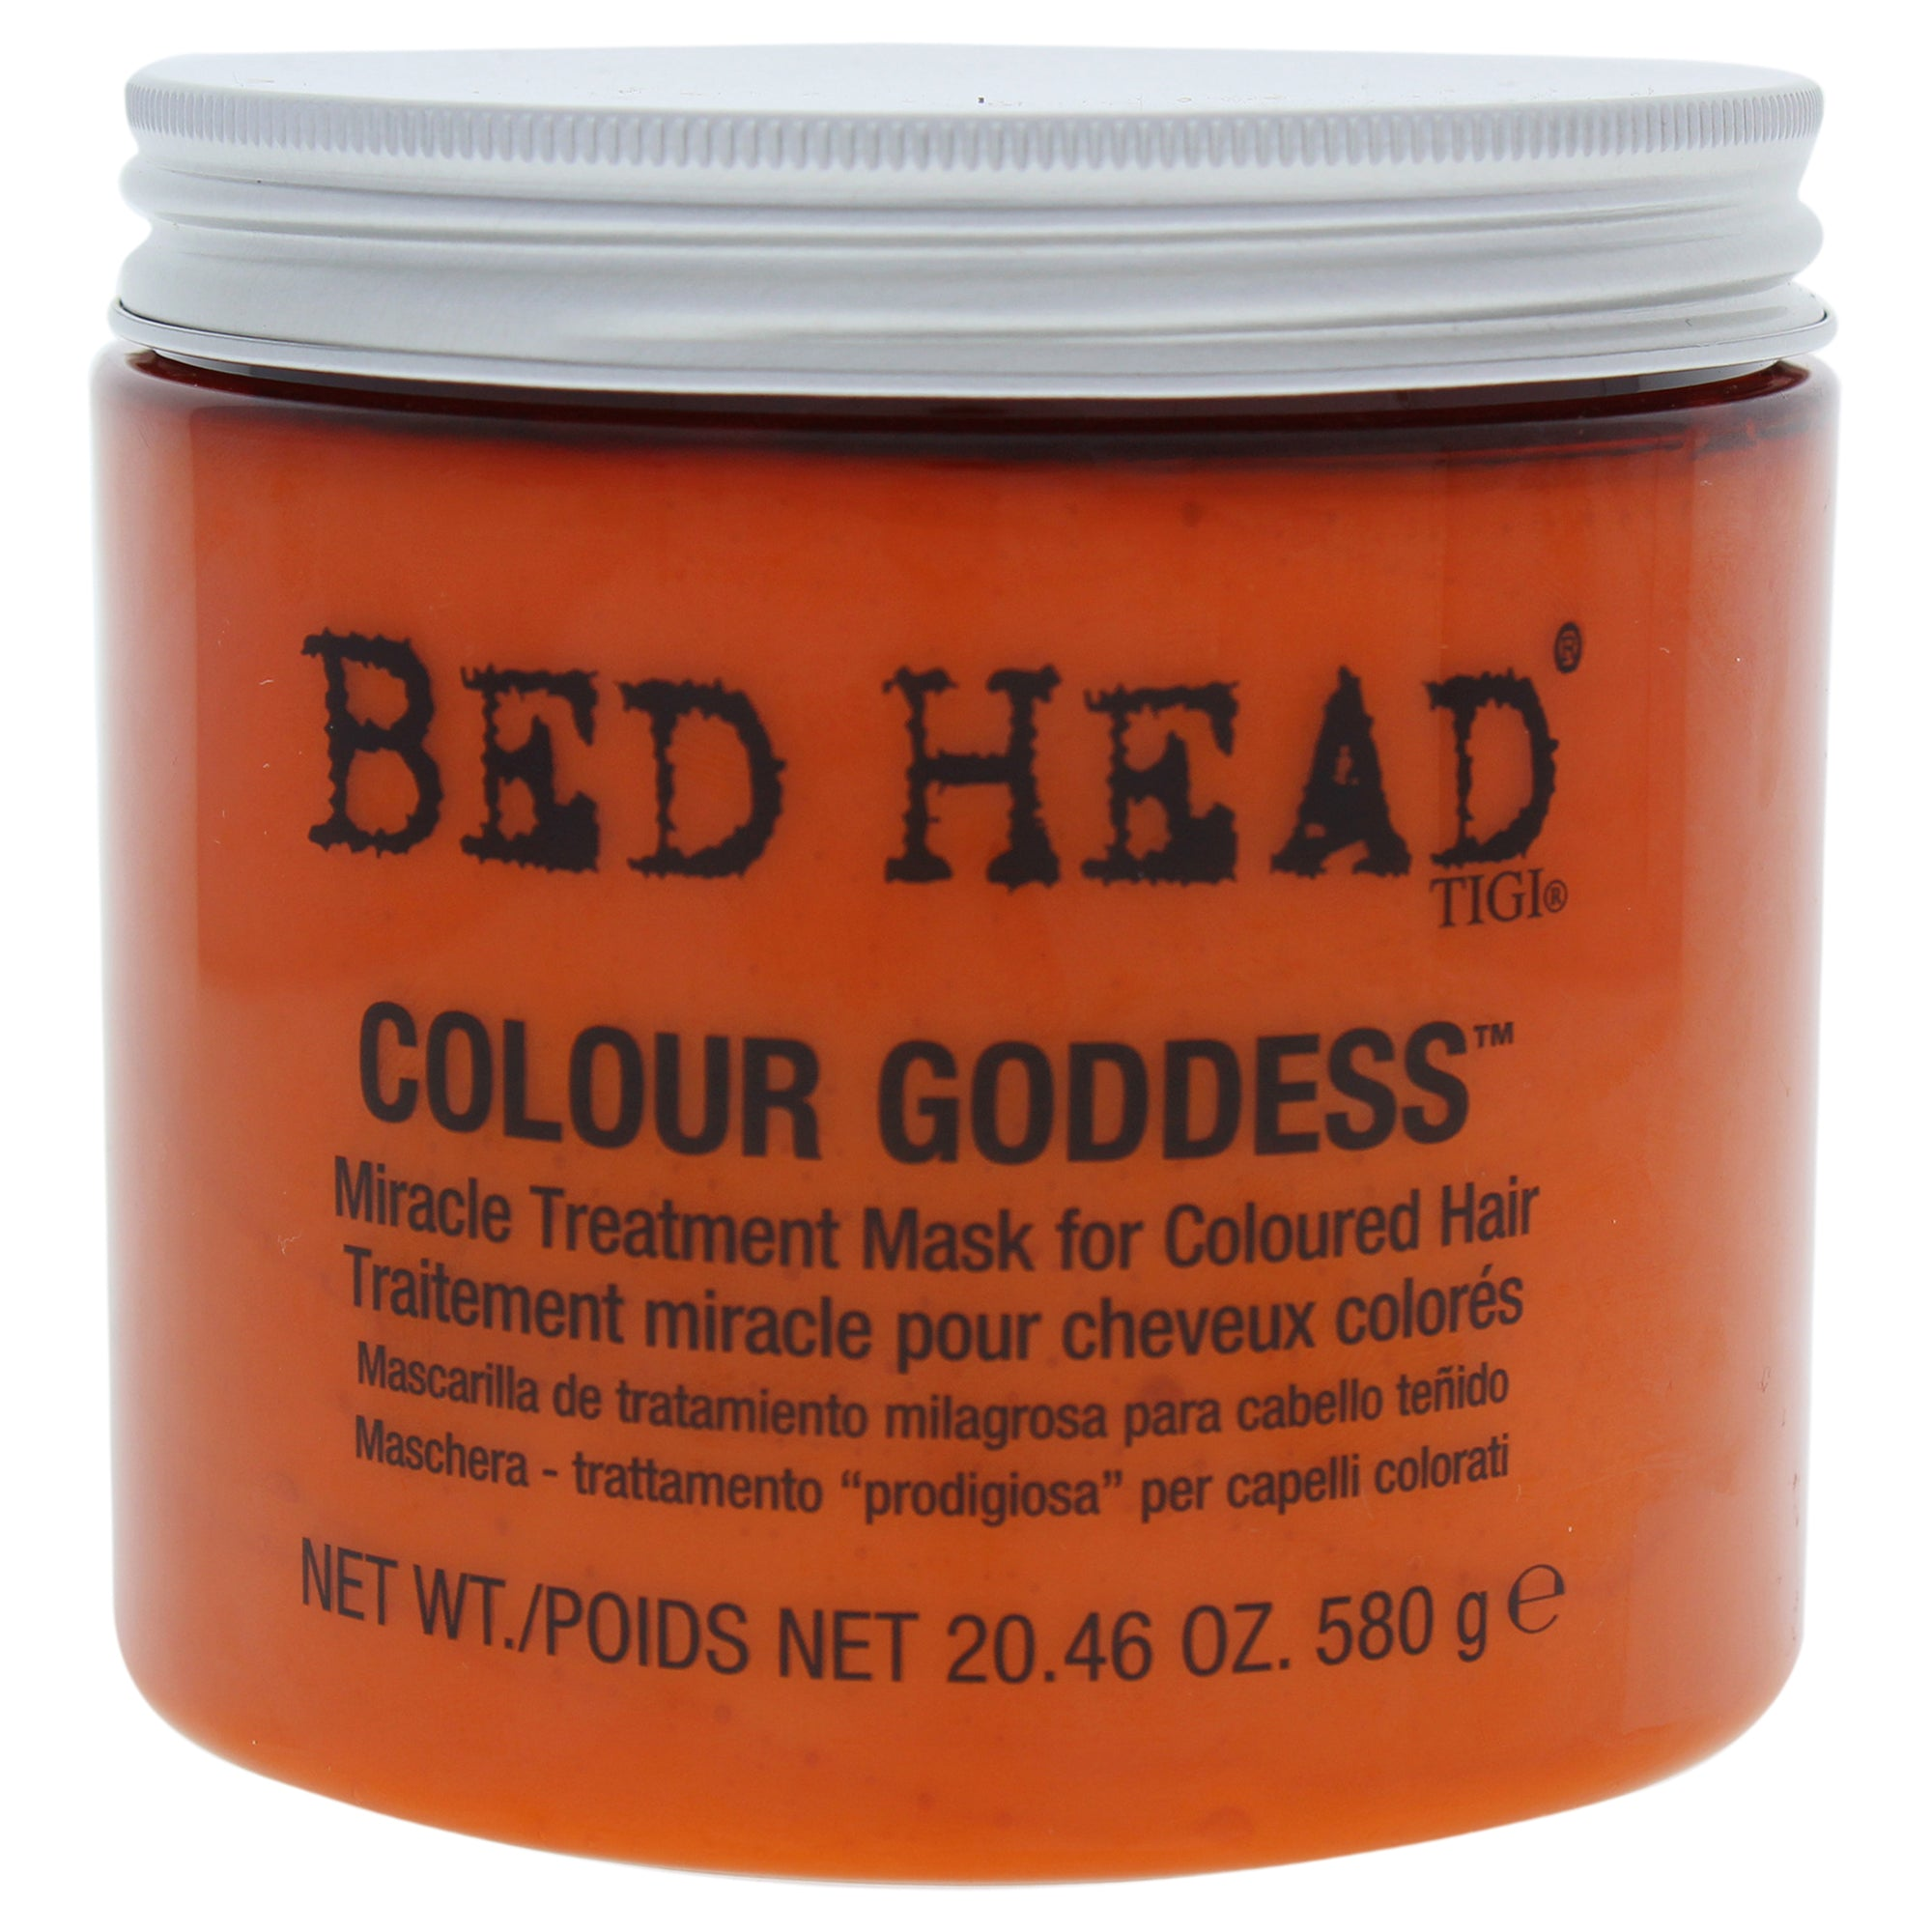 TIGI Bed Head Colour Goddess Miracle Treatment Mask For Coloured Hair